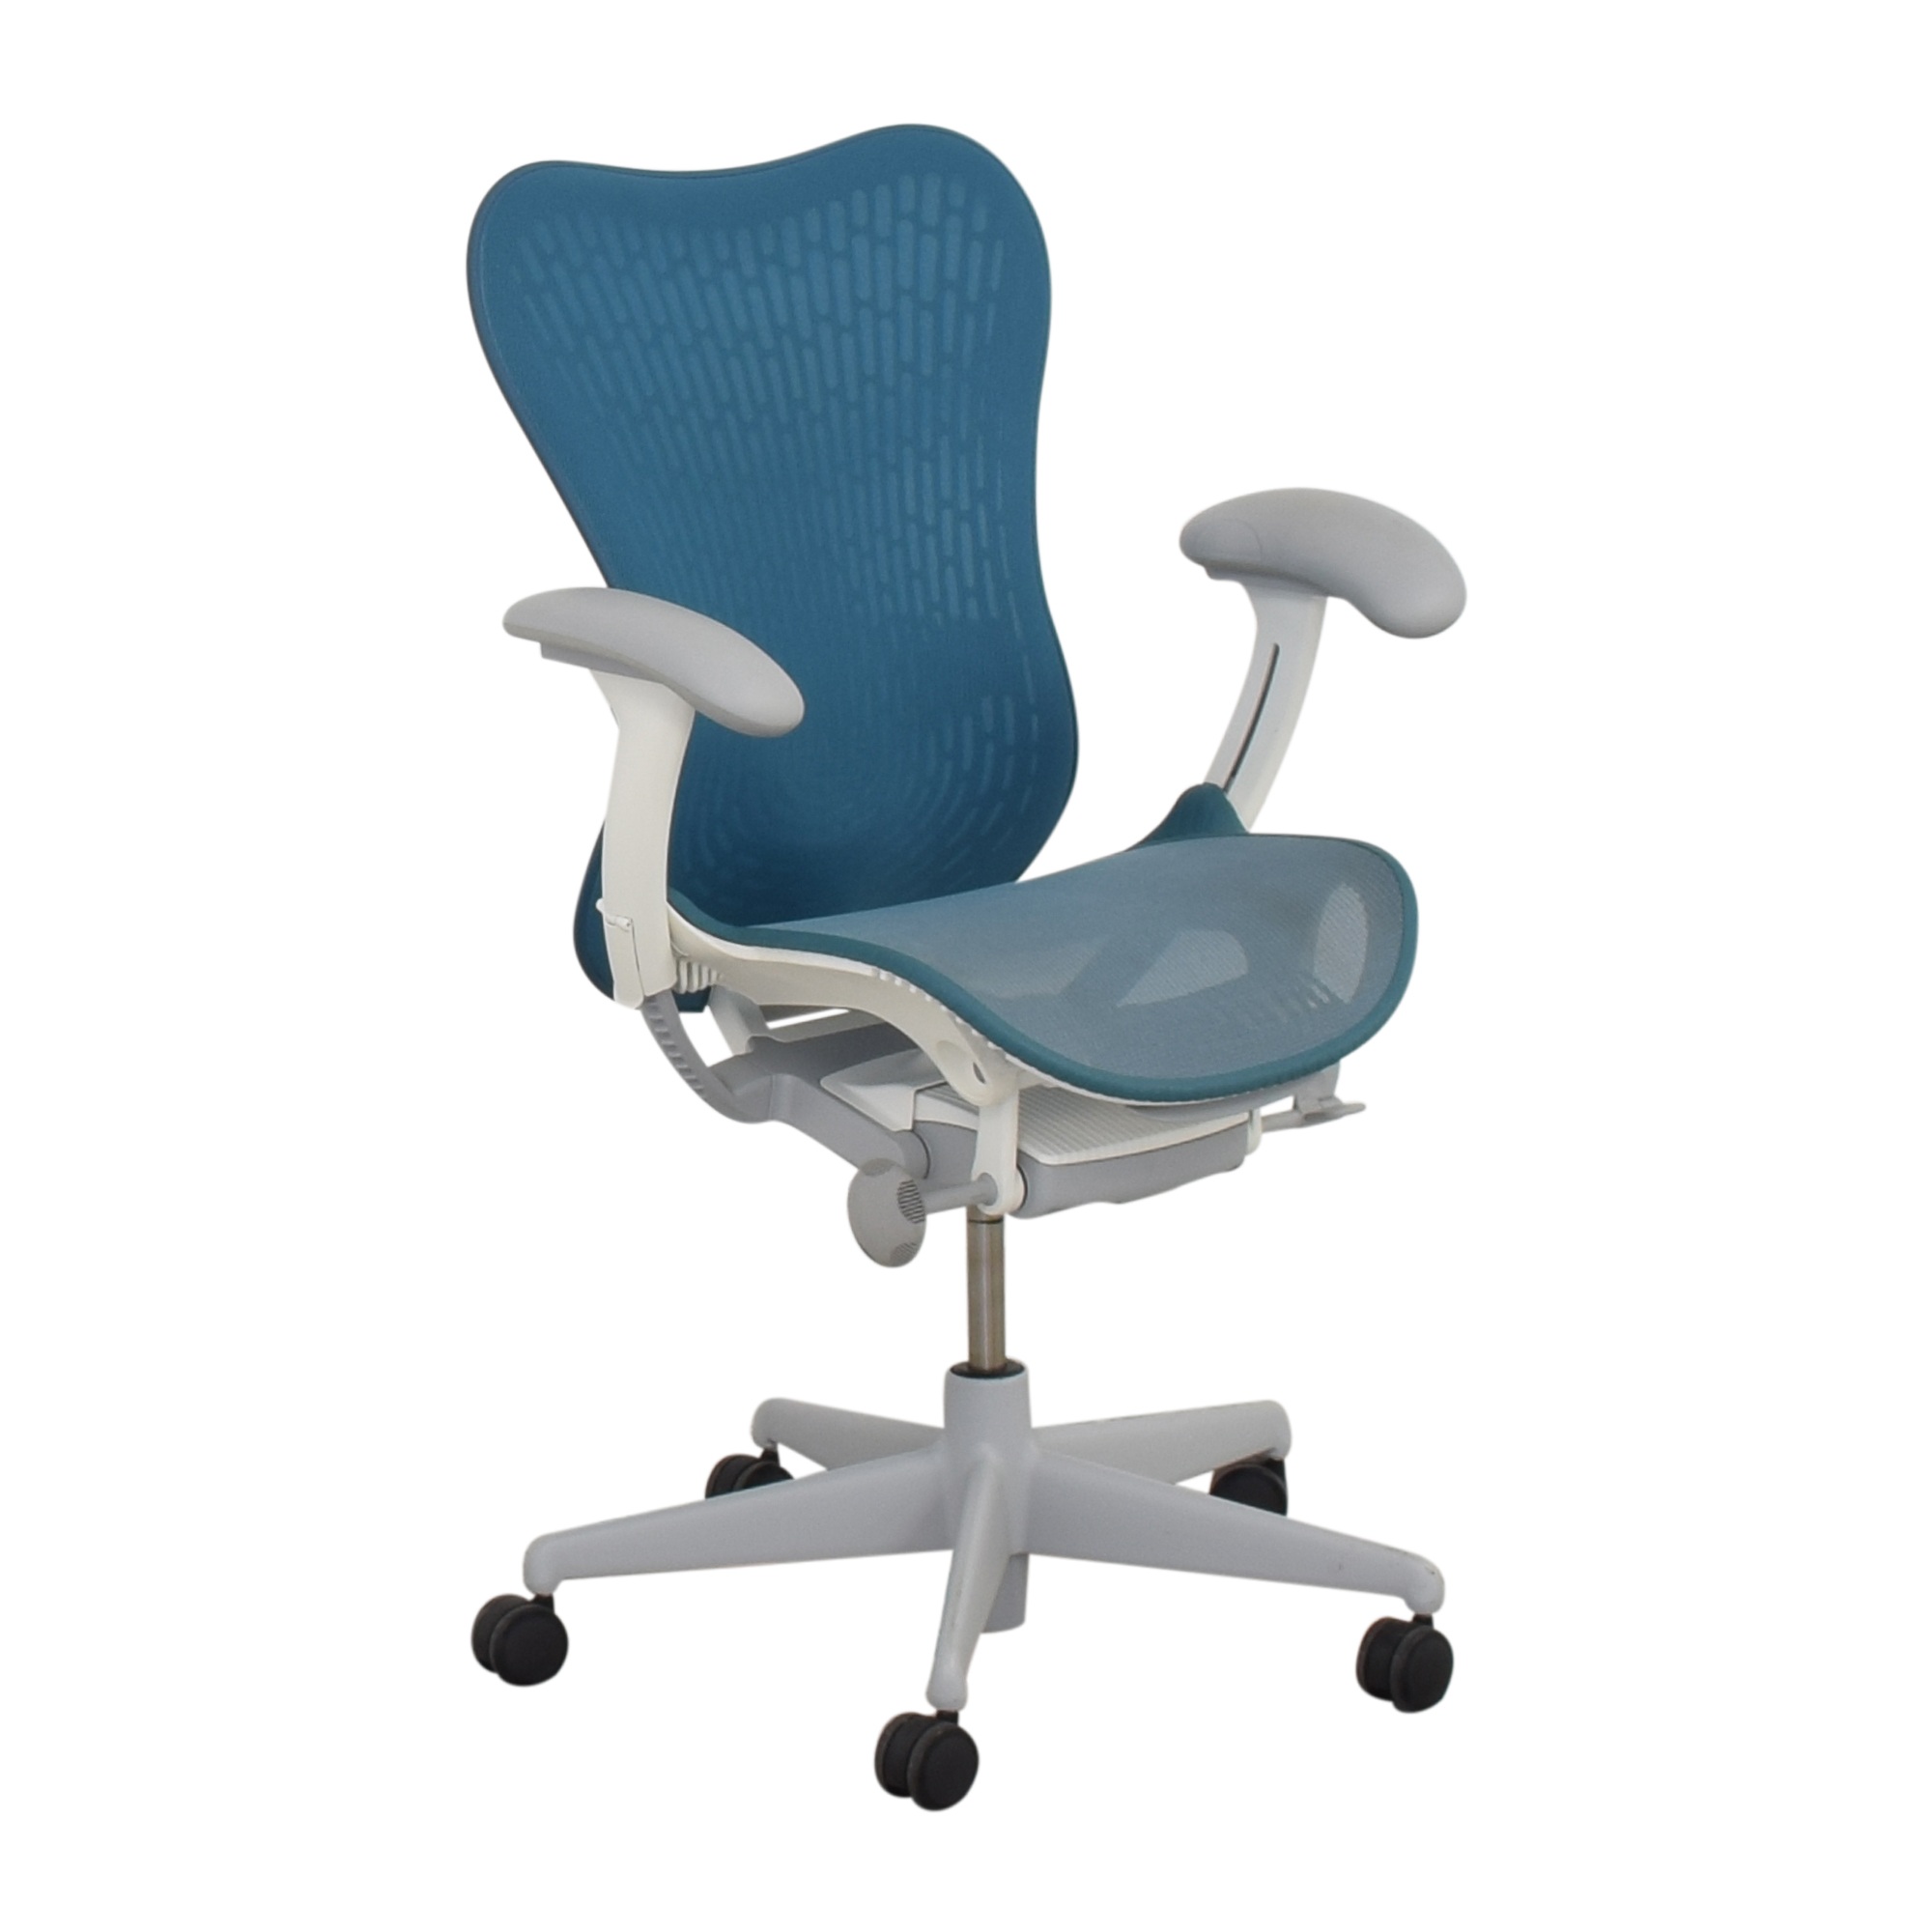 Herman Miller Herman Miller Mirra Chair ct